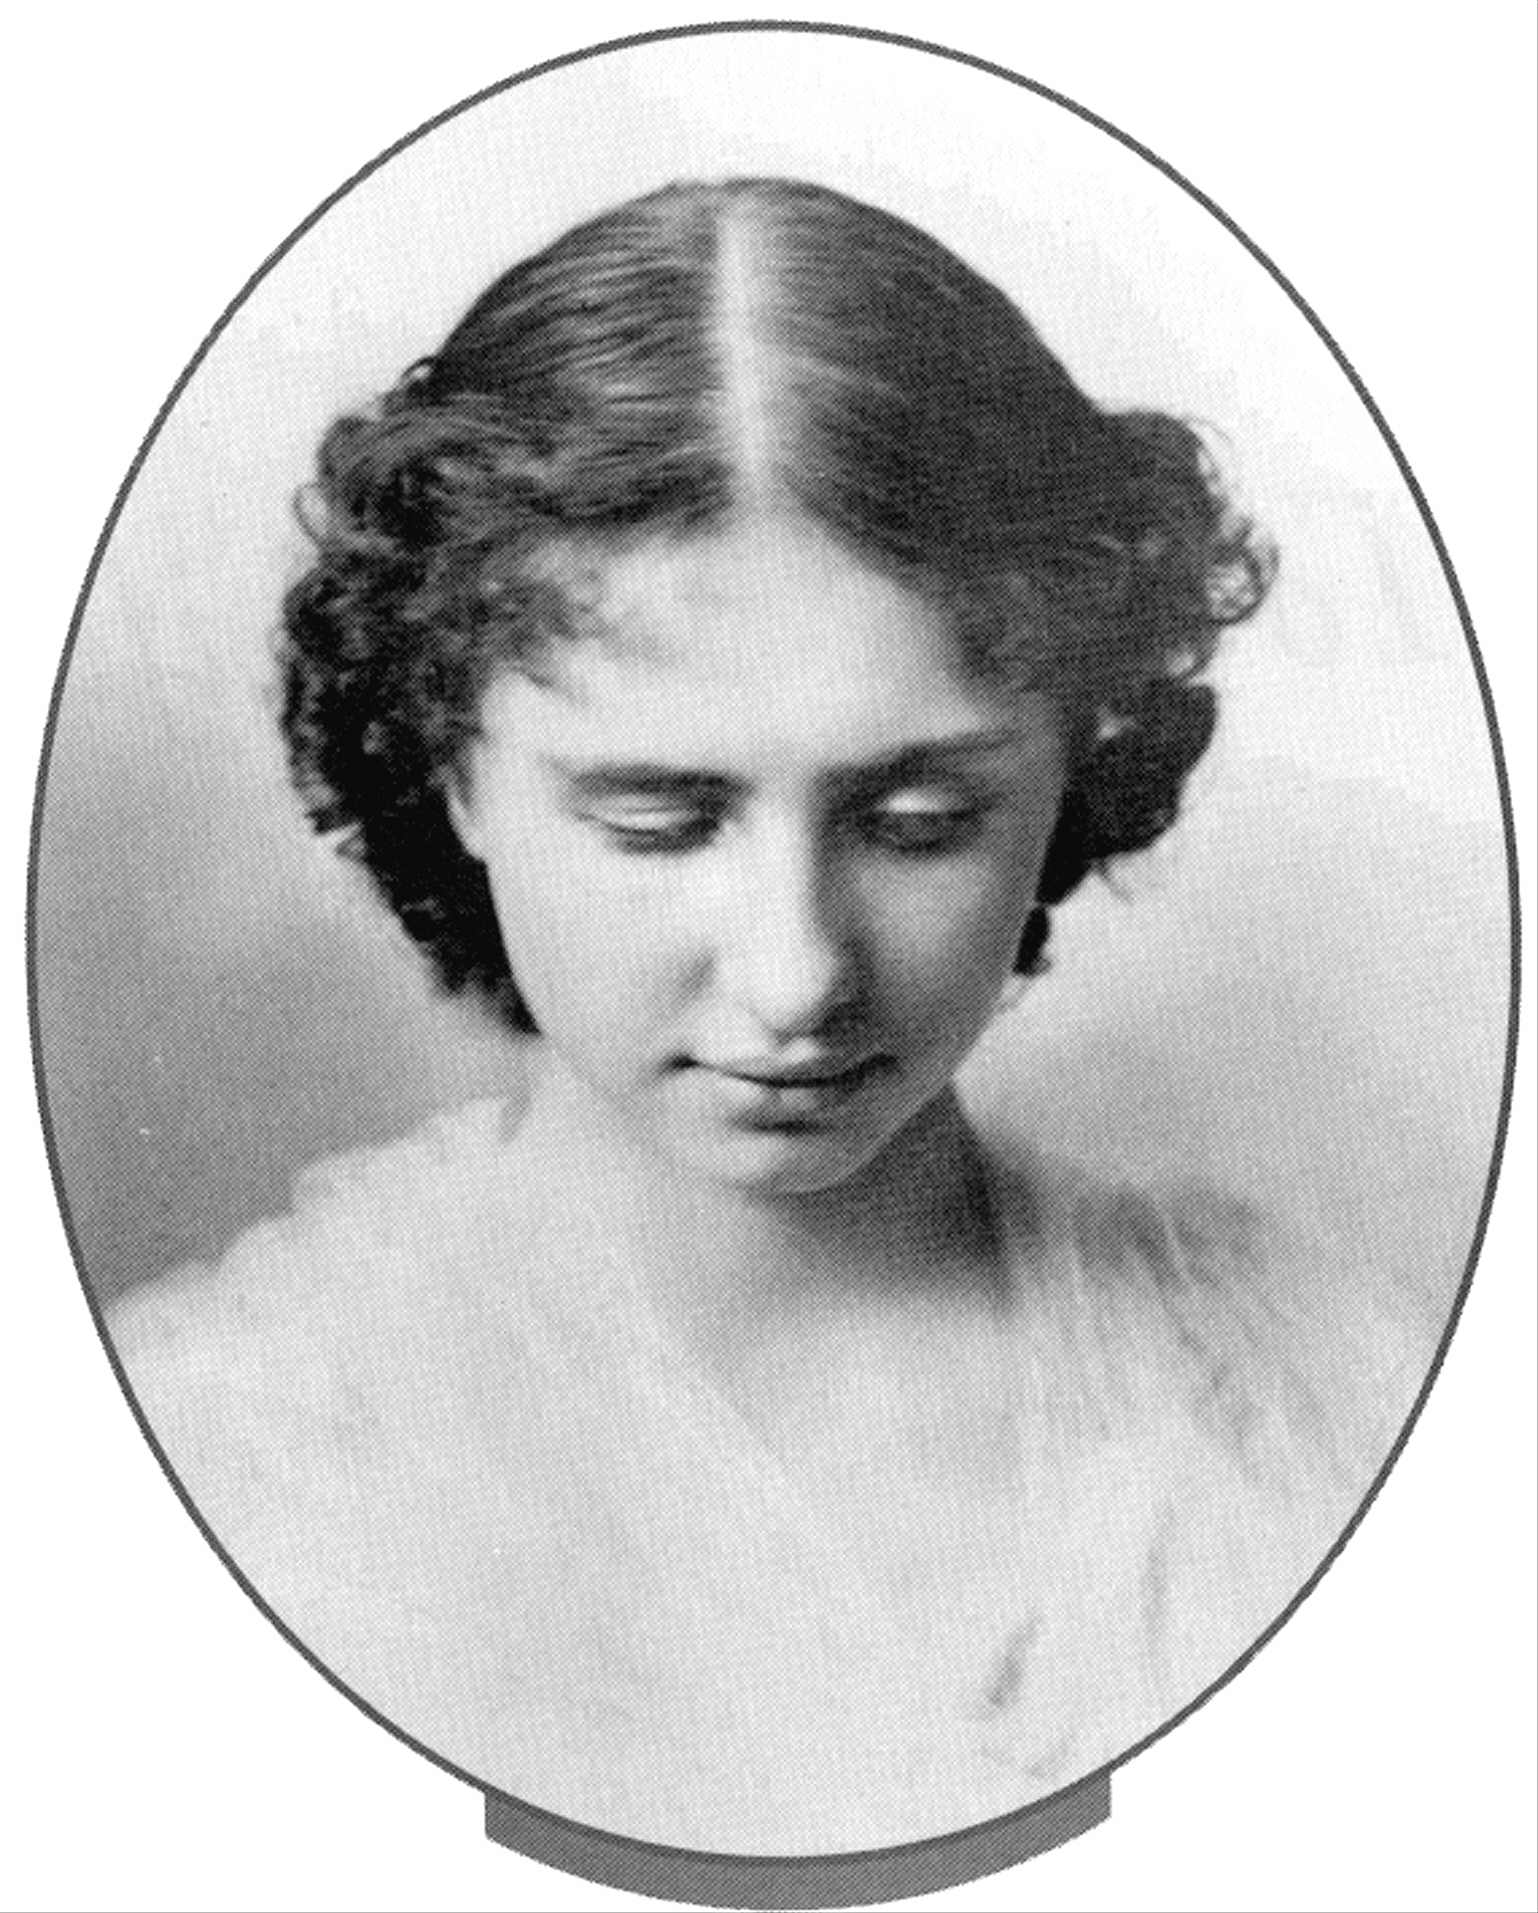 index of miracleworker parent directory · 1 helen keller looking down young pic jpg